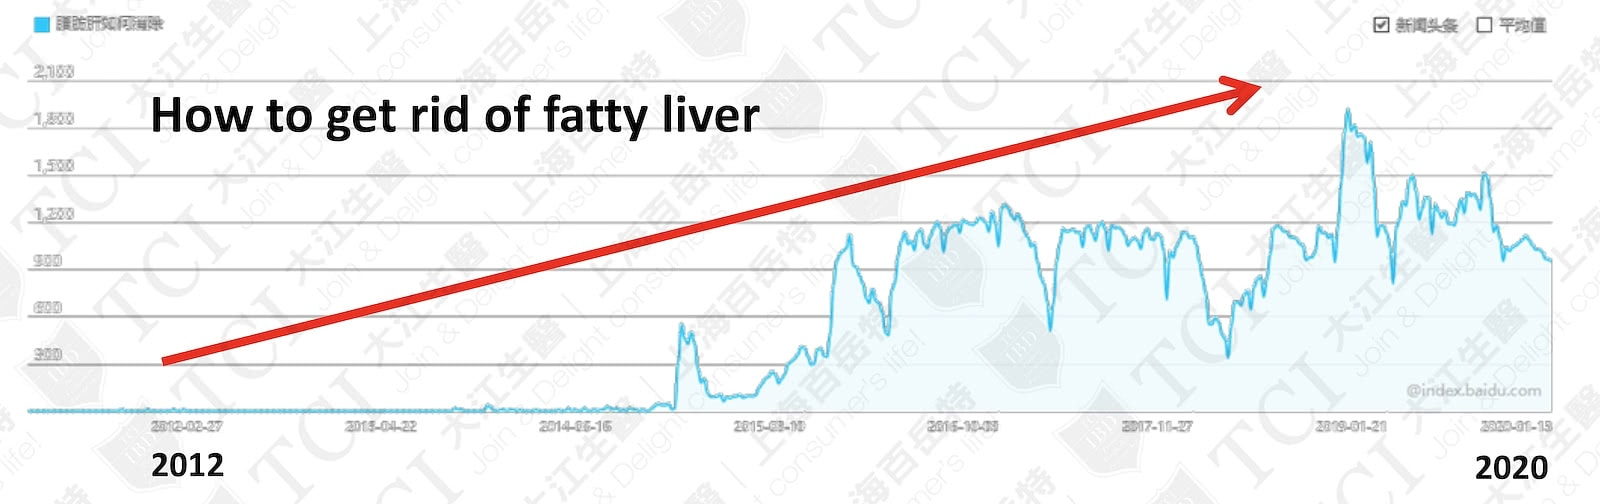 """Search Volume of """"How to Get Rid of Fatty Liver"""" / Data Source: Baidu Index"""